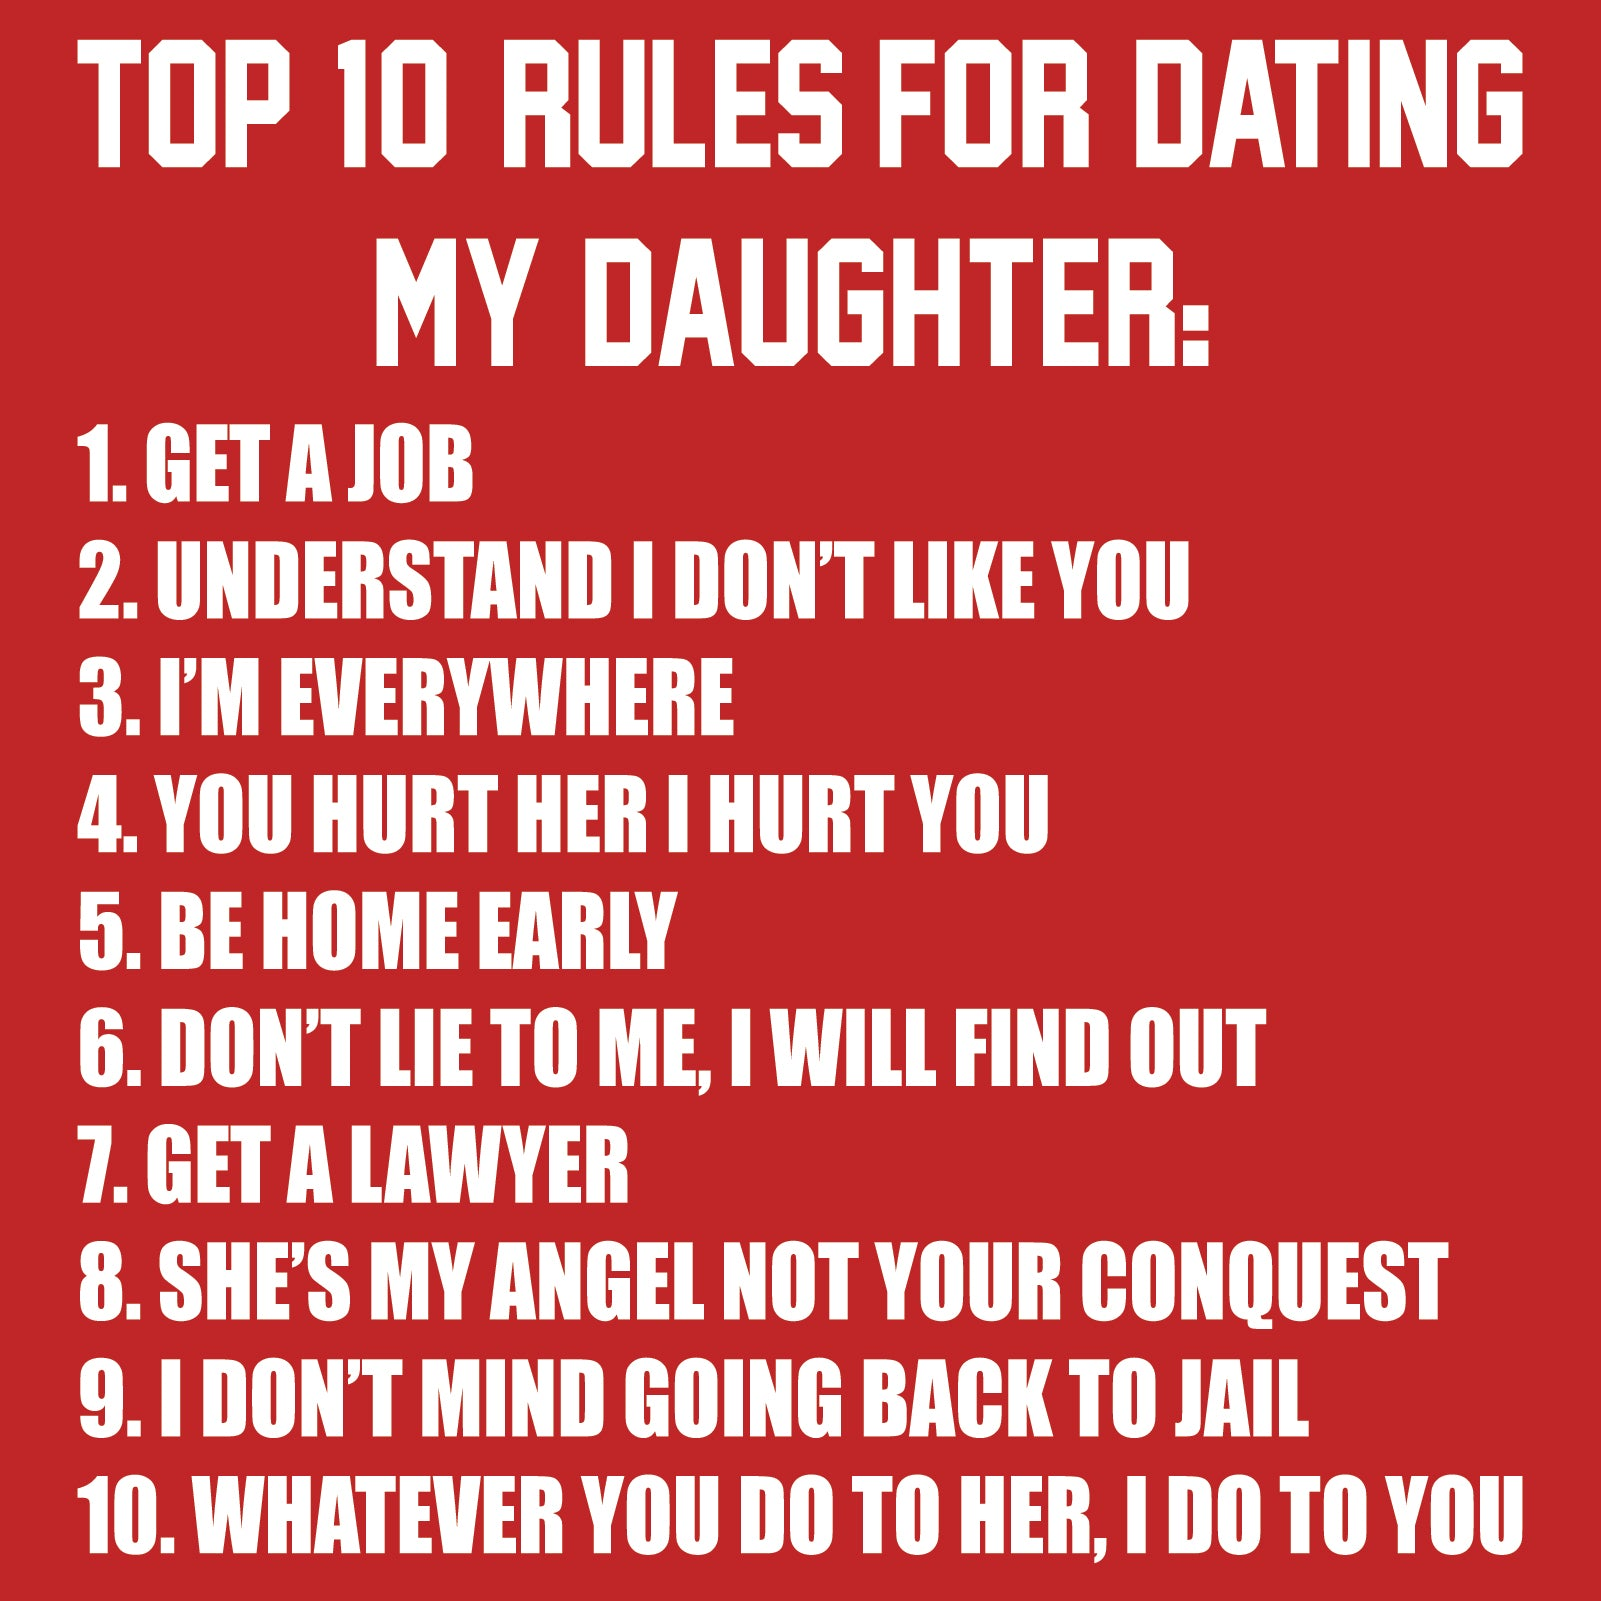 10 rules for dating my daughter in Brisbane